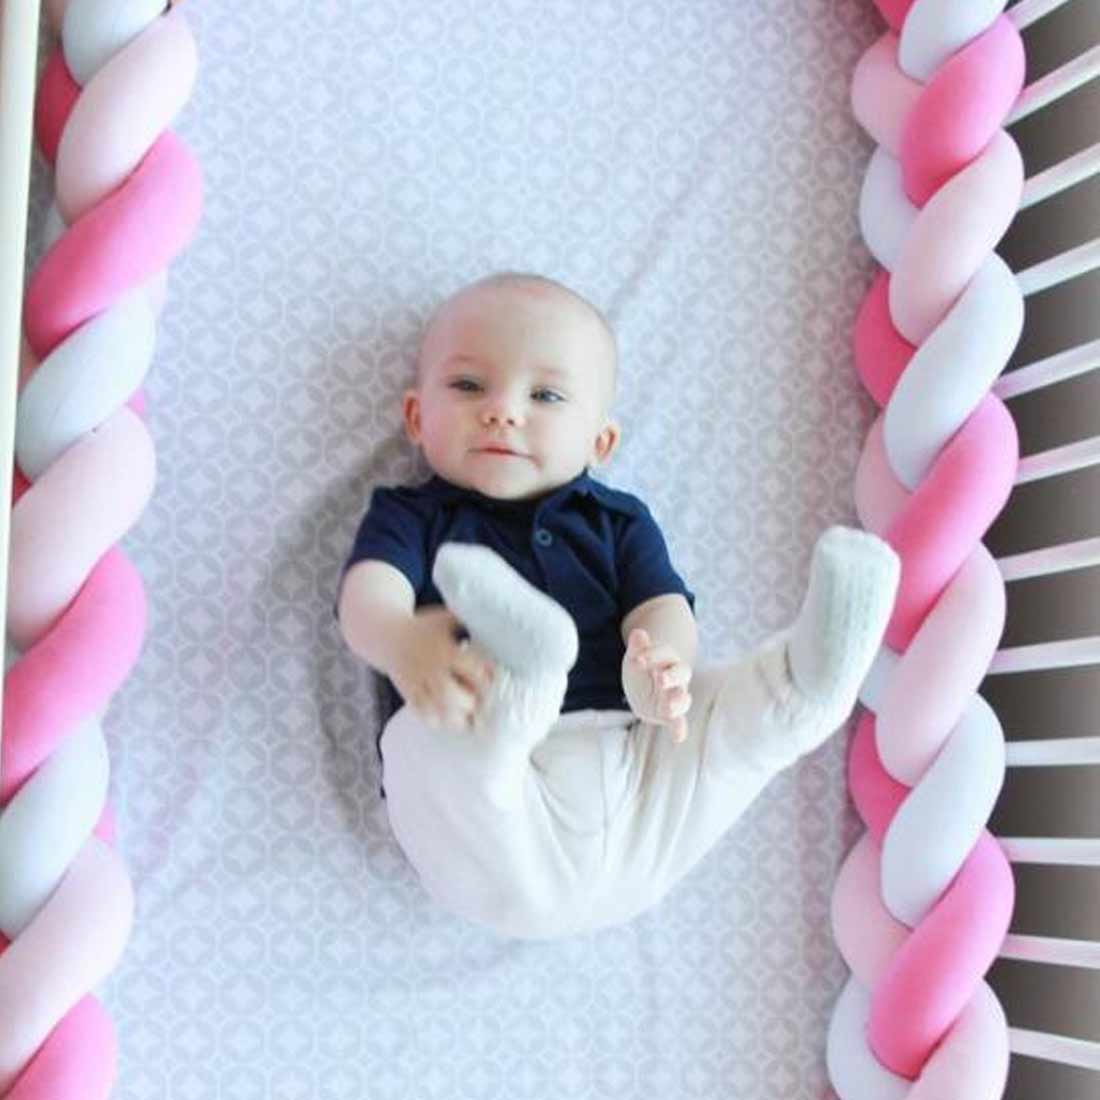 Baby Bed Bumper Knot Long Handmade Knotted Braid Weaving Plush Baby Crib Protector Infant Knot Pillow Room Decor 1M/2M/3M